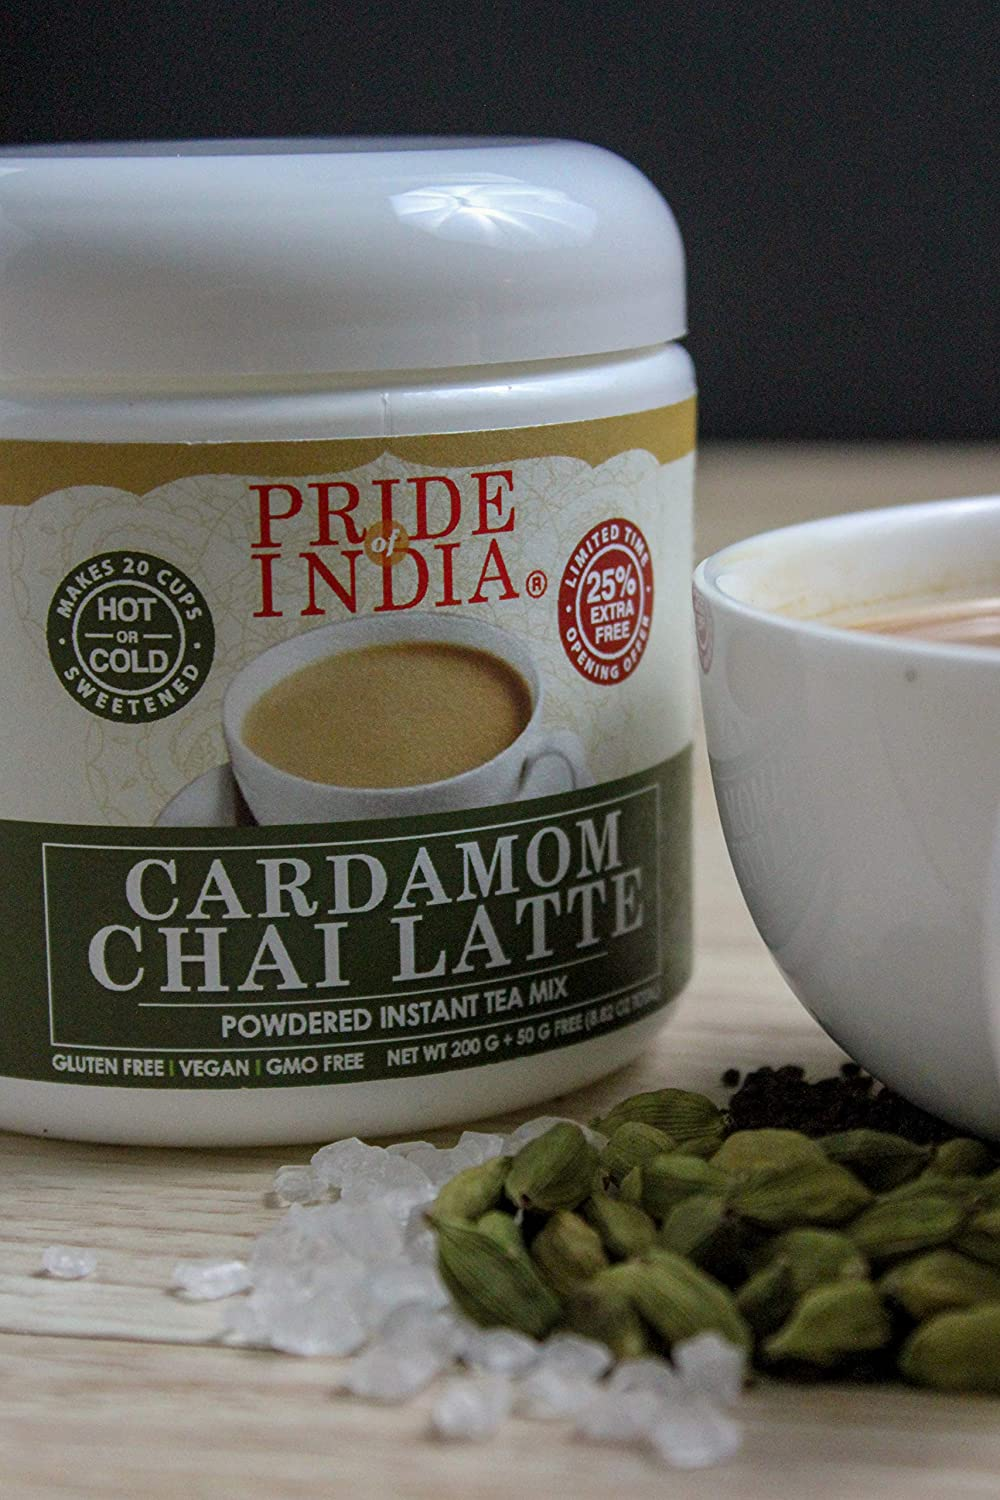 Pride Of India - Cardamom Chai Latte - Powdered Instant Tea